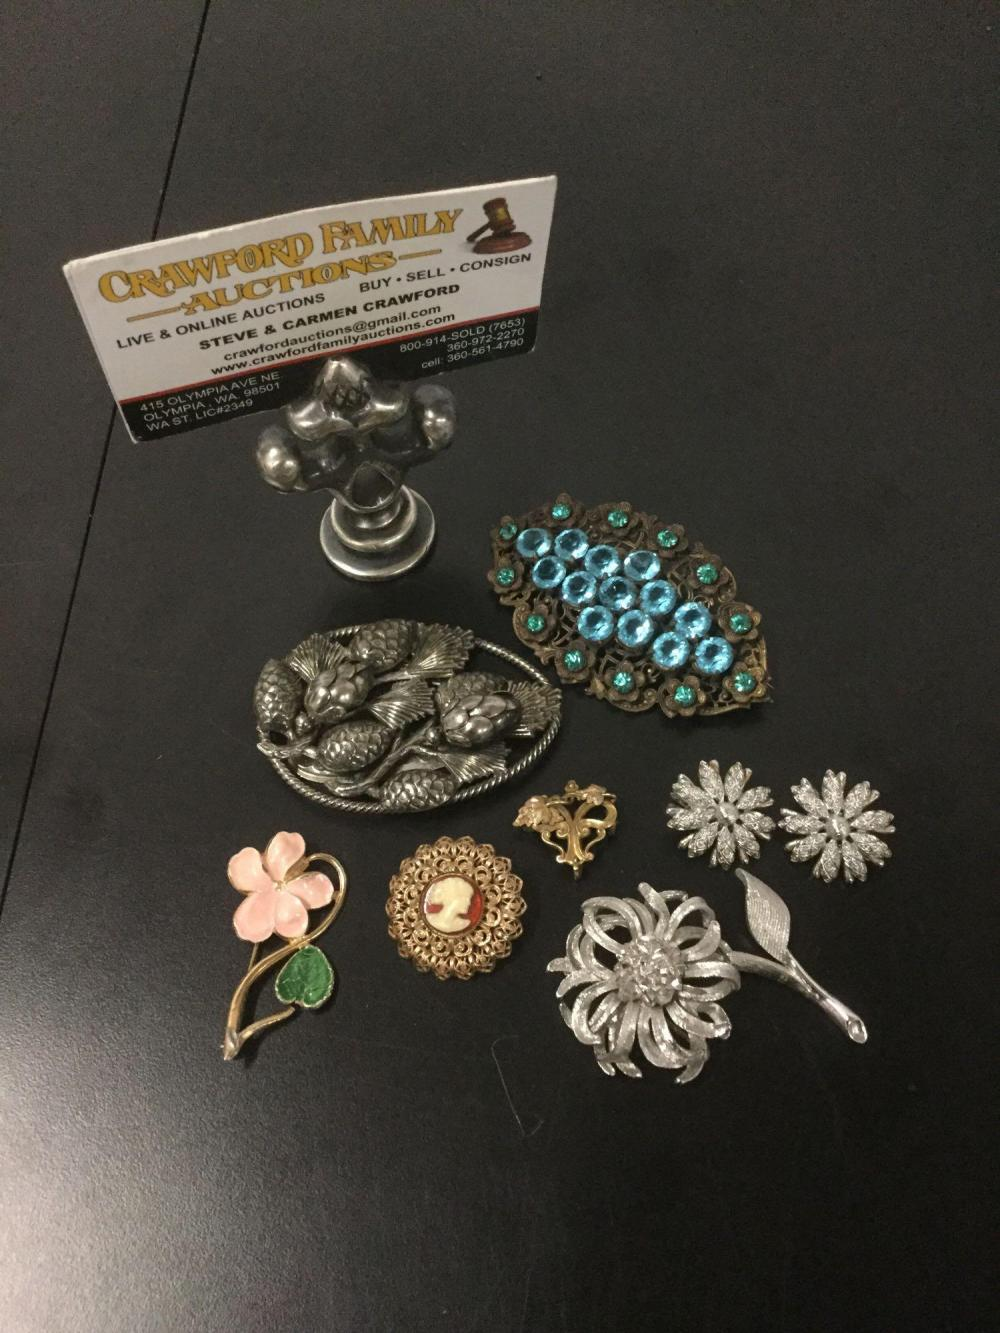 6 antique & modern costume jewelry brooches with pair of earrings - Monet, Lisner, Simmons, etc